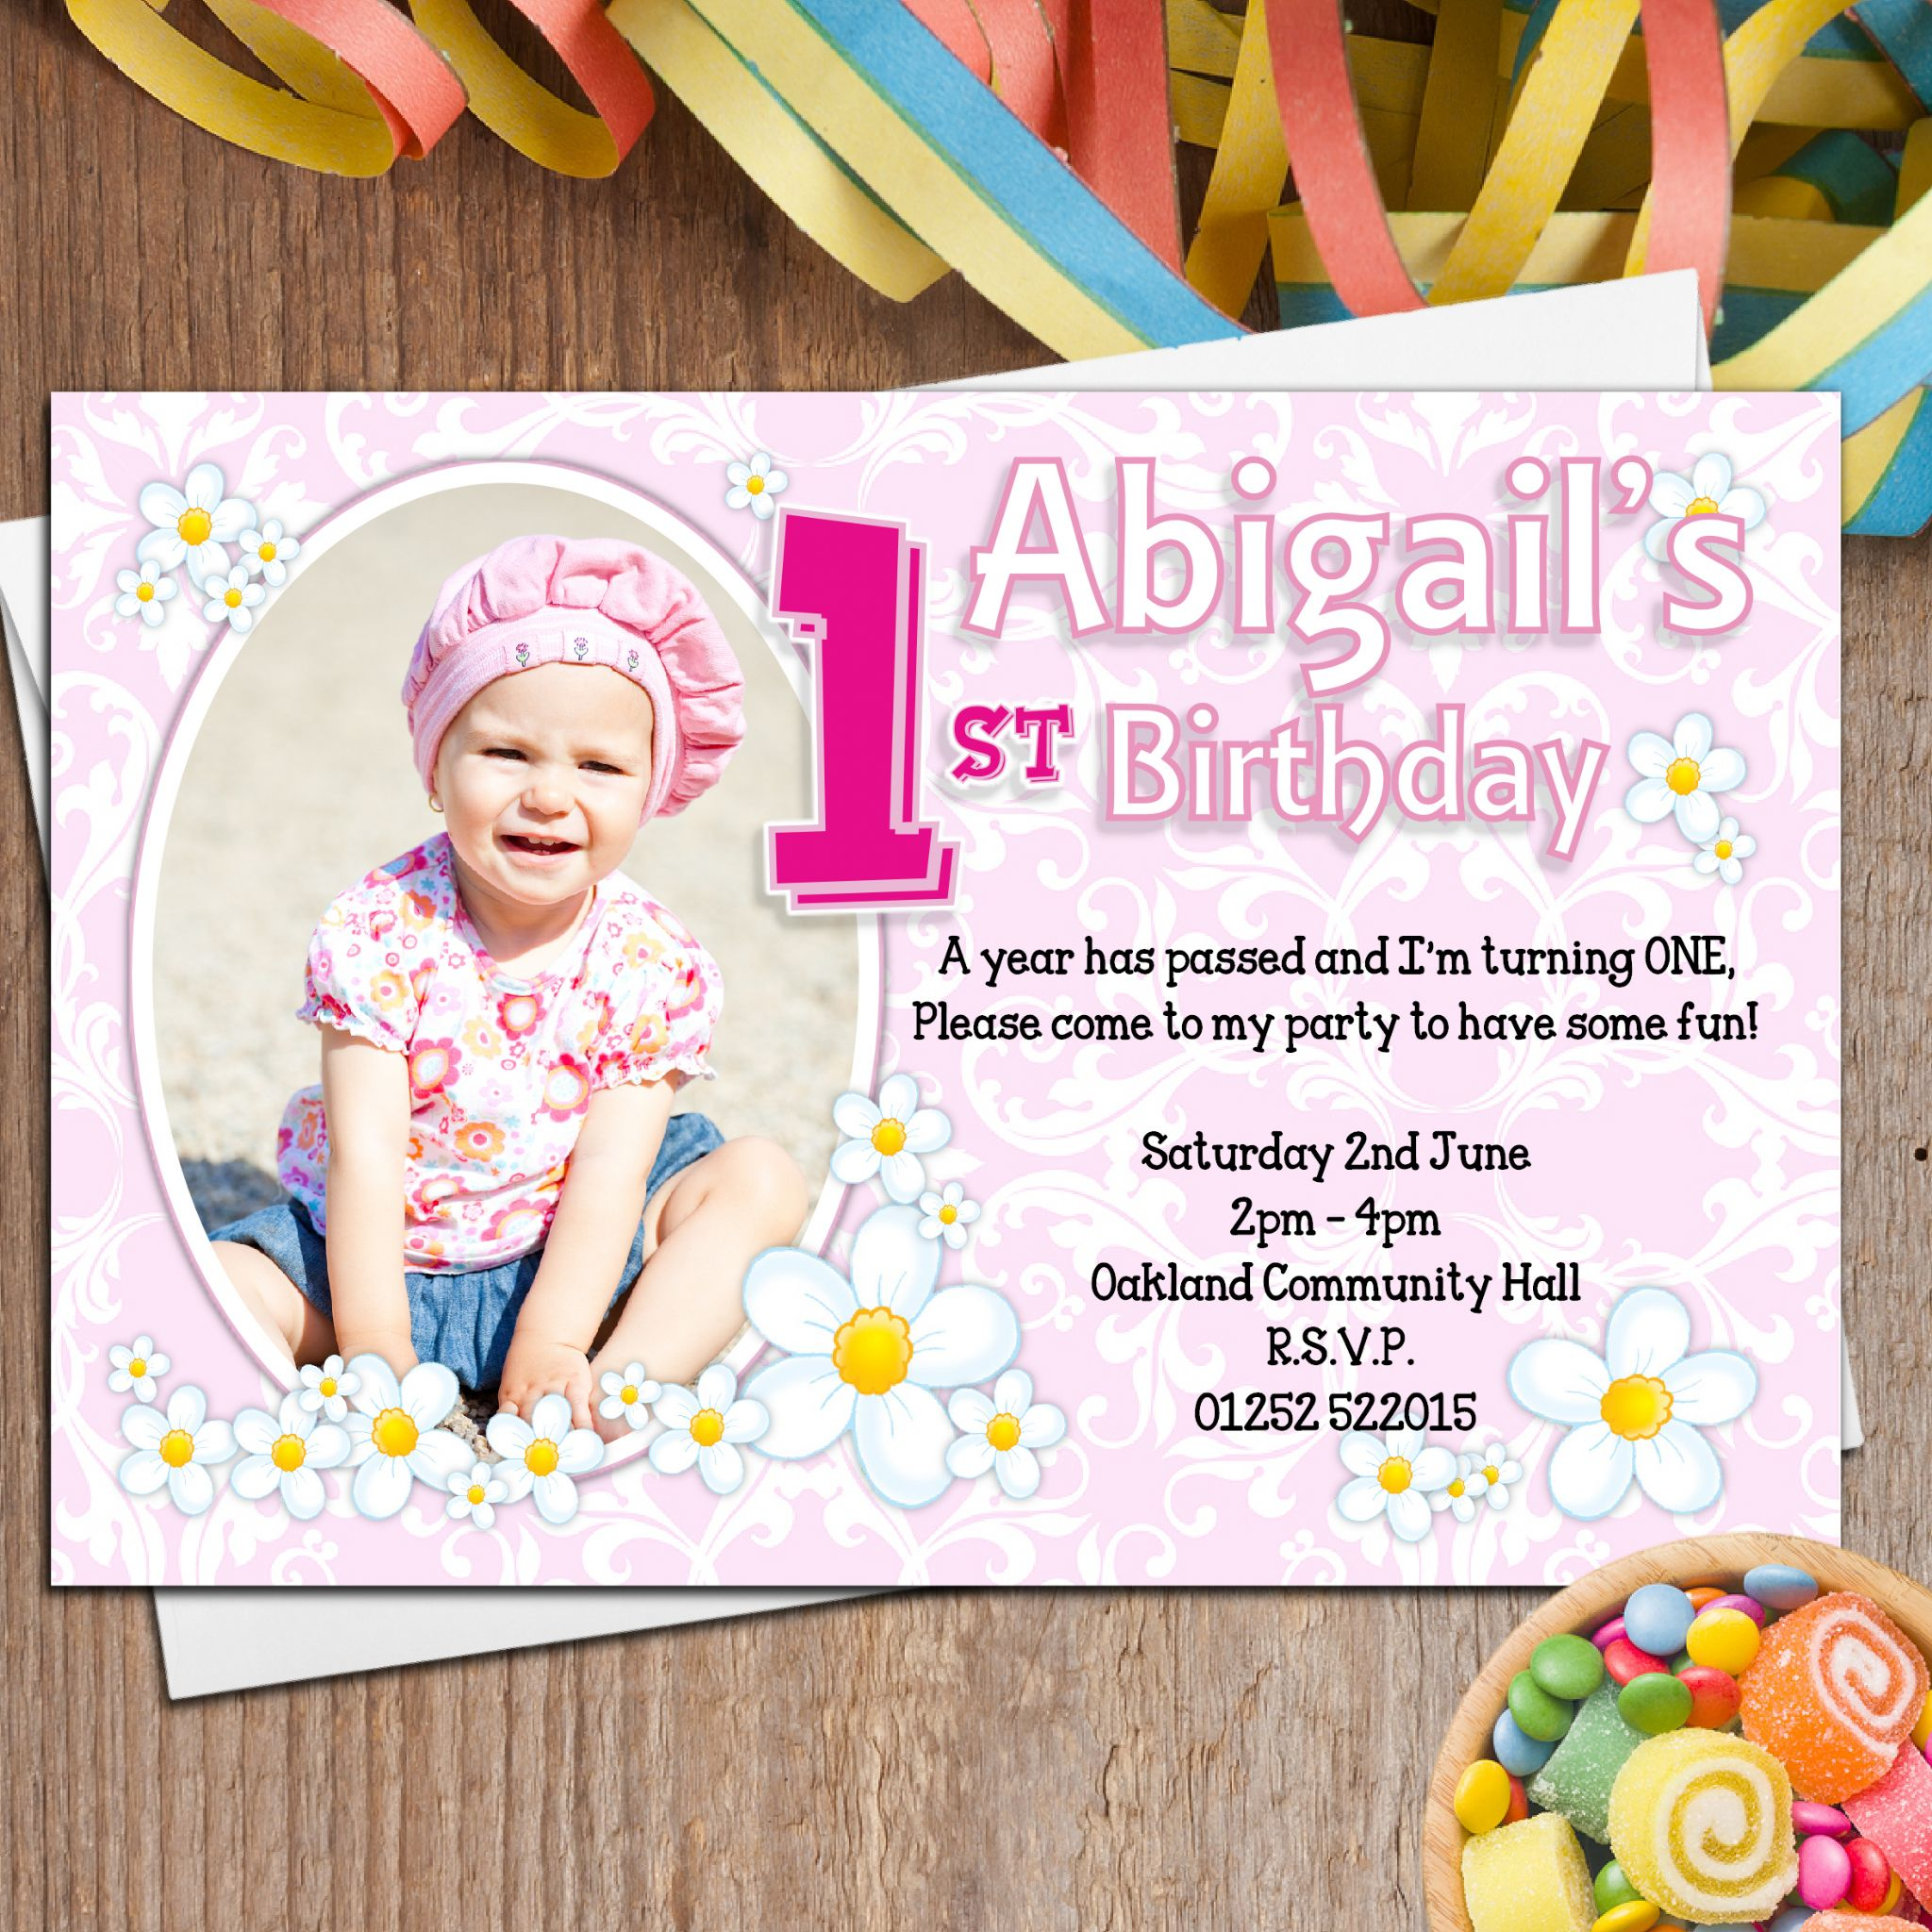 1st birthday party invitation templates Intoanysearchco